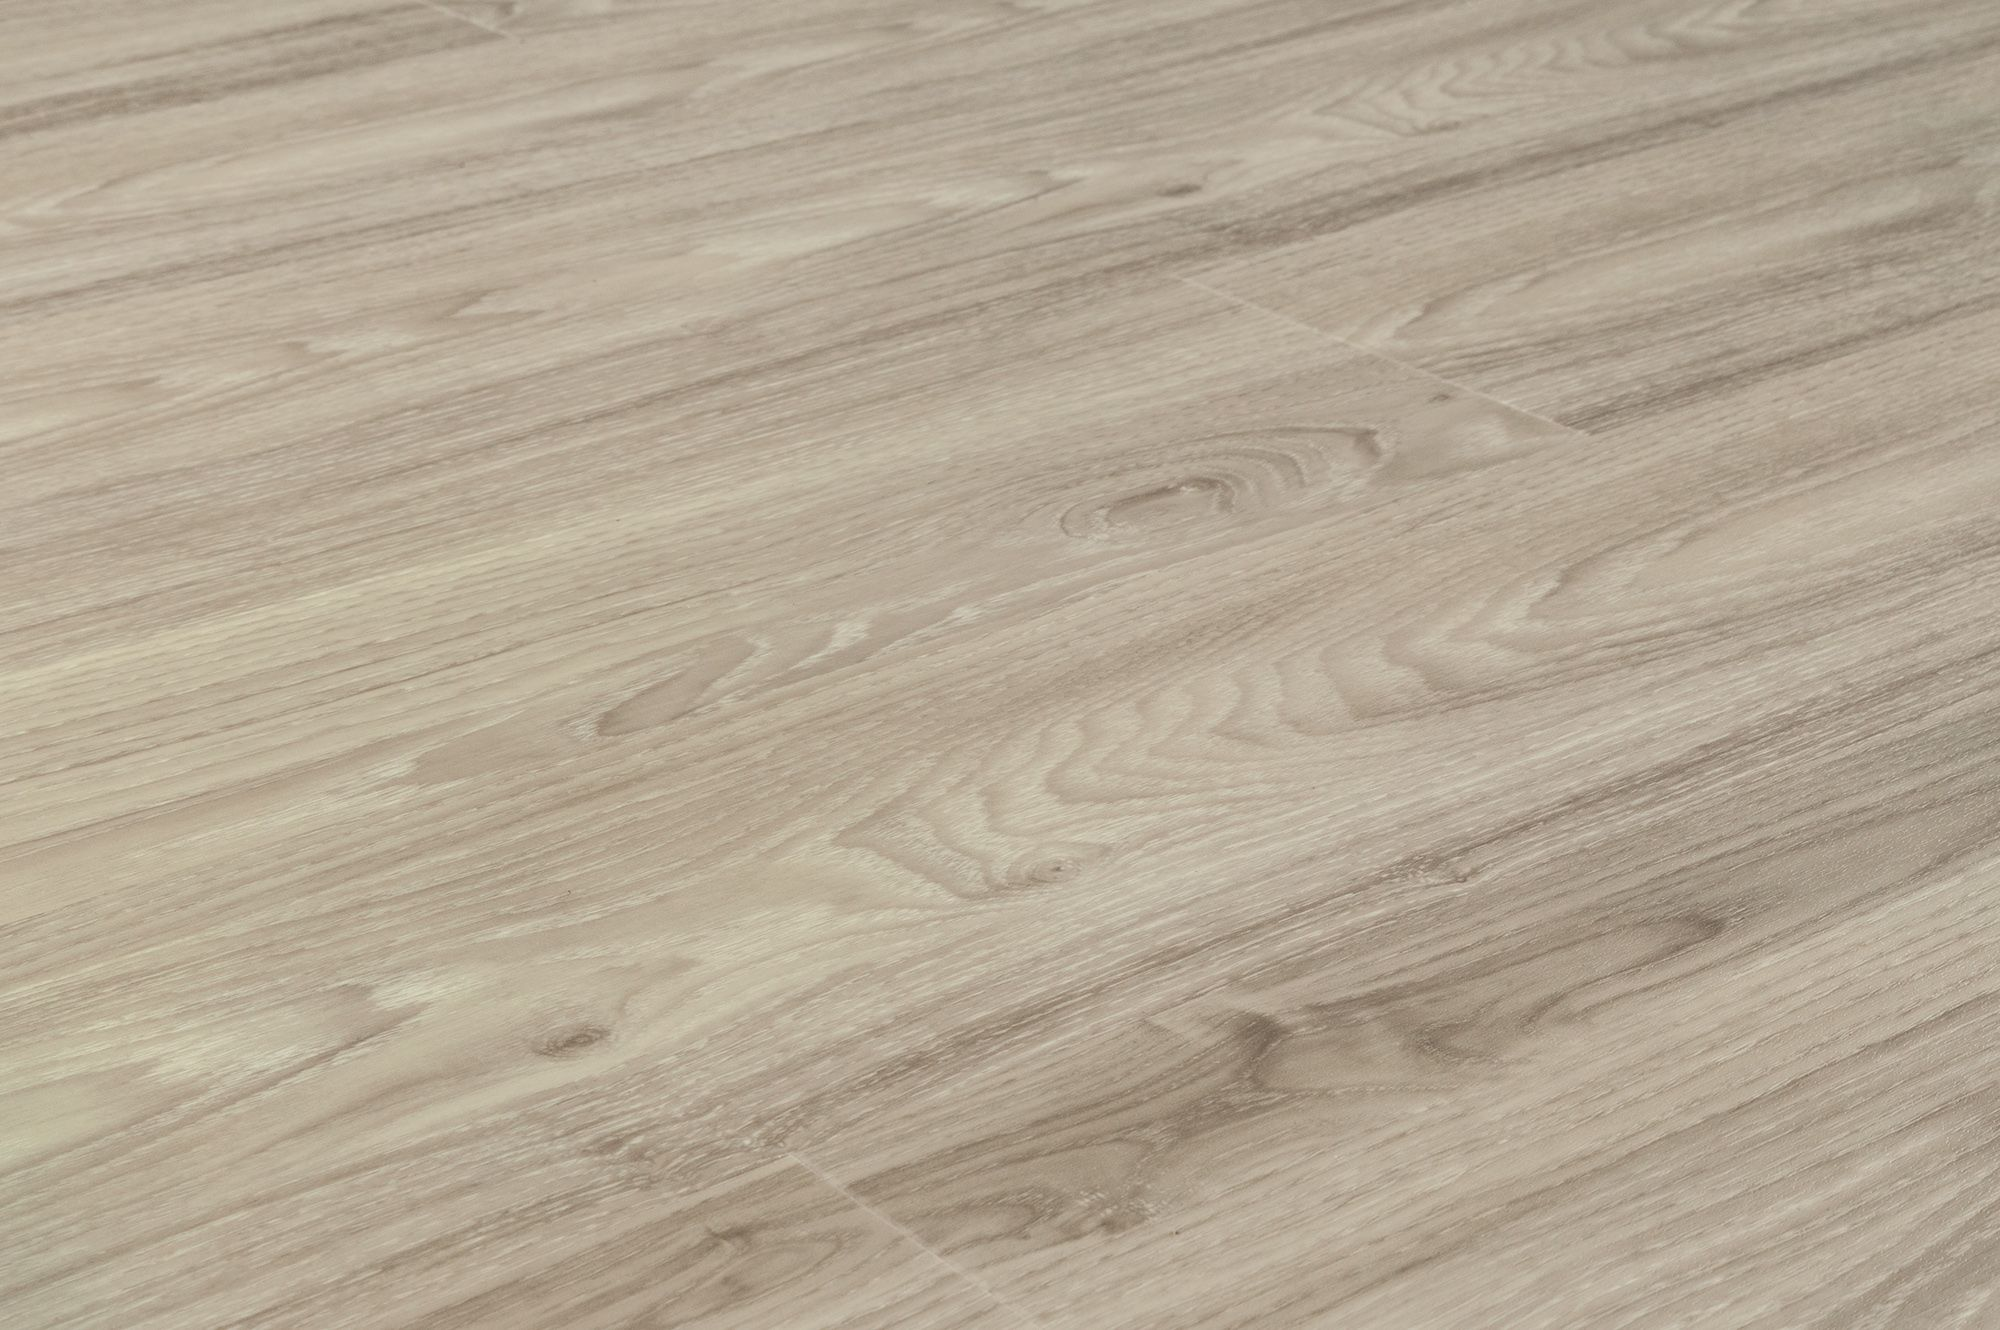 americana click walnut thick in lock length floors varying ft home x hardwood p engineered case sq legend wide flooring